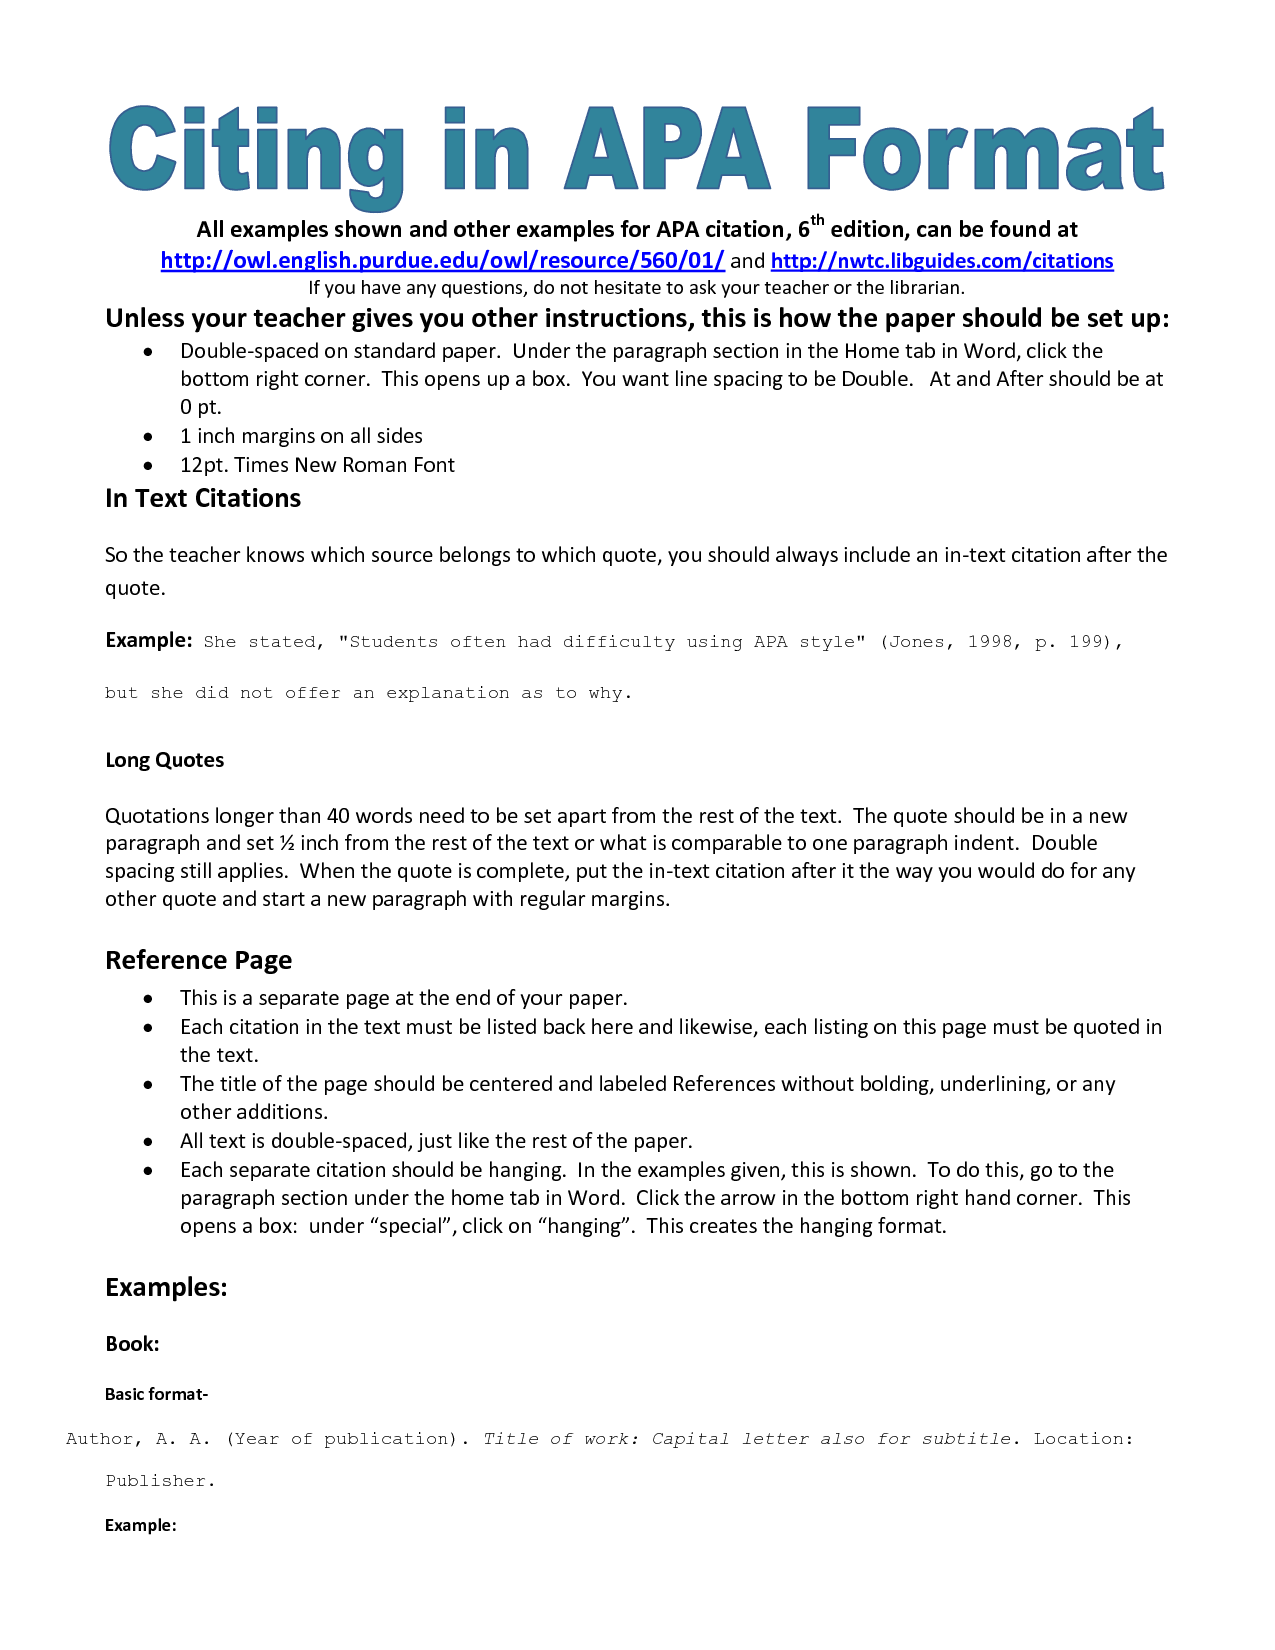 essay citing books Documenting sources home a creating a source list overview b citing  sources overview c helpful hints d mla 1 essay format 2 formatting a.